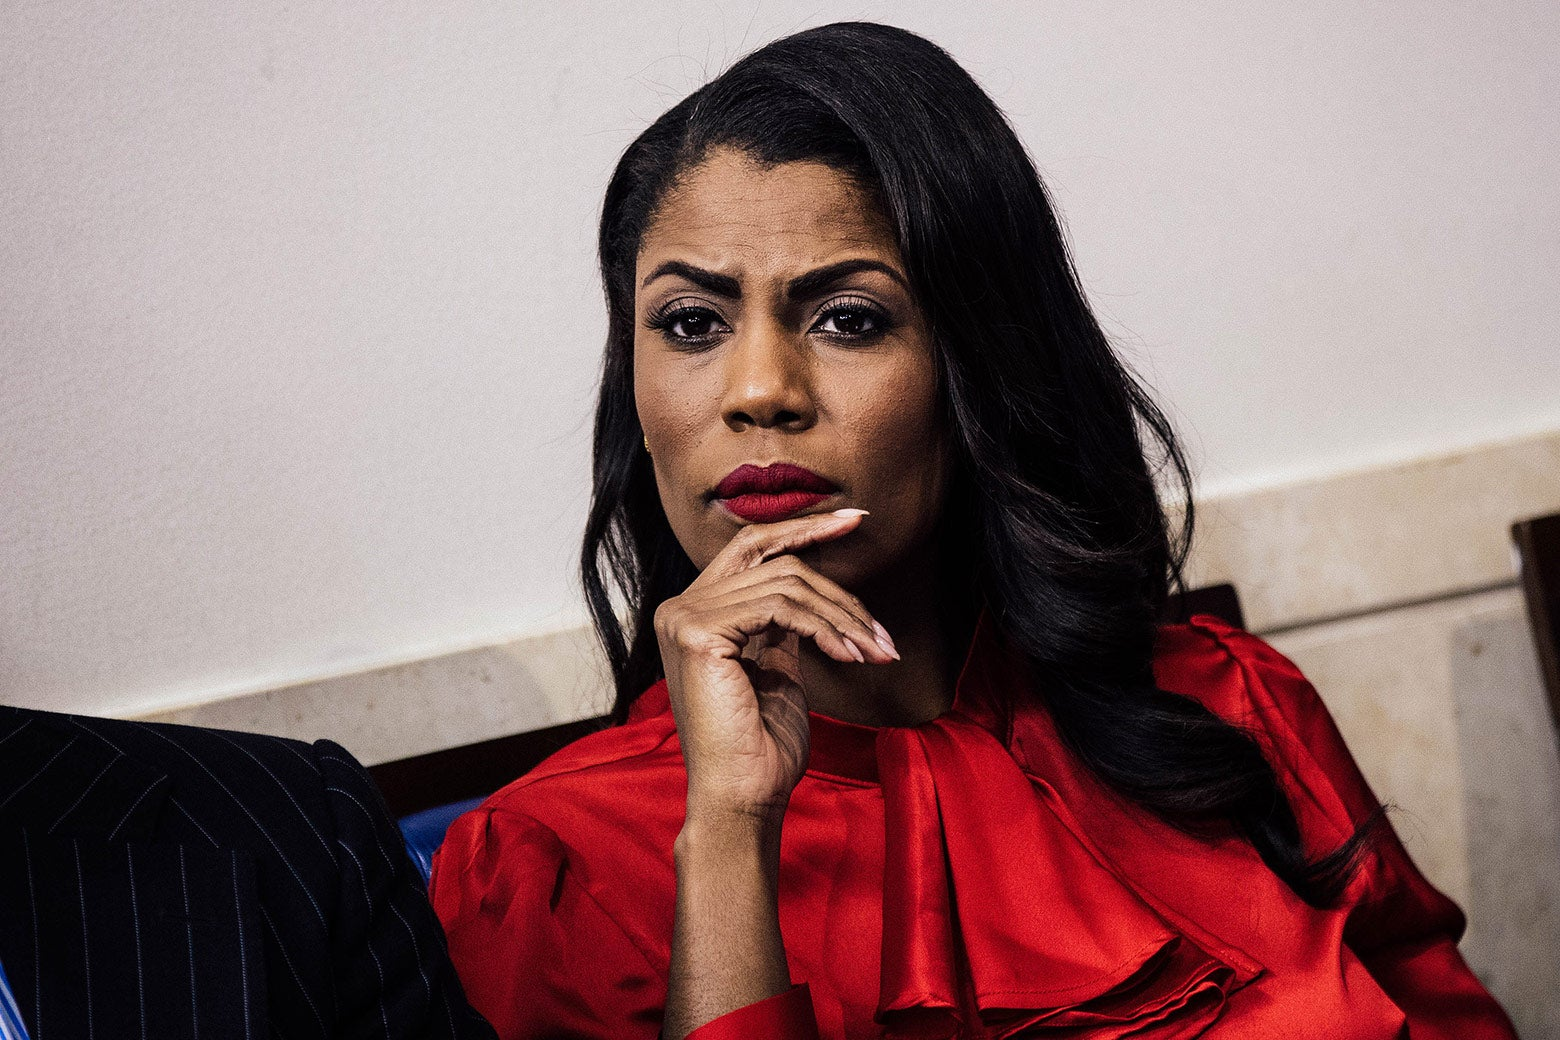 Omarosa Manigault listens during the daily press briefing at the White House on Oct. 27.